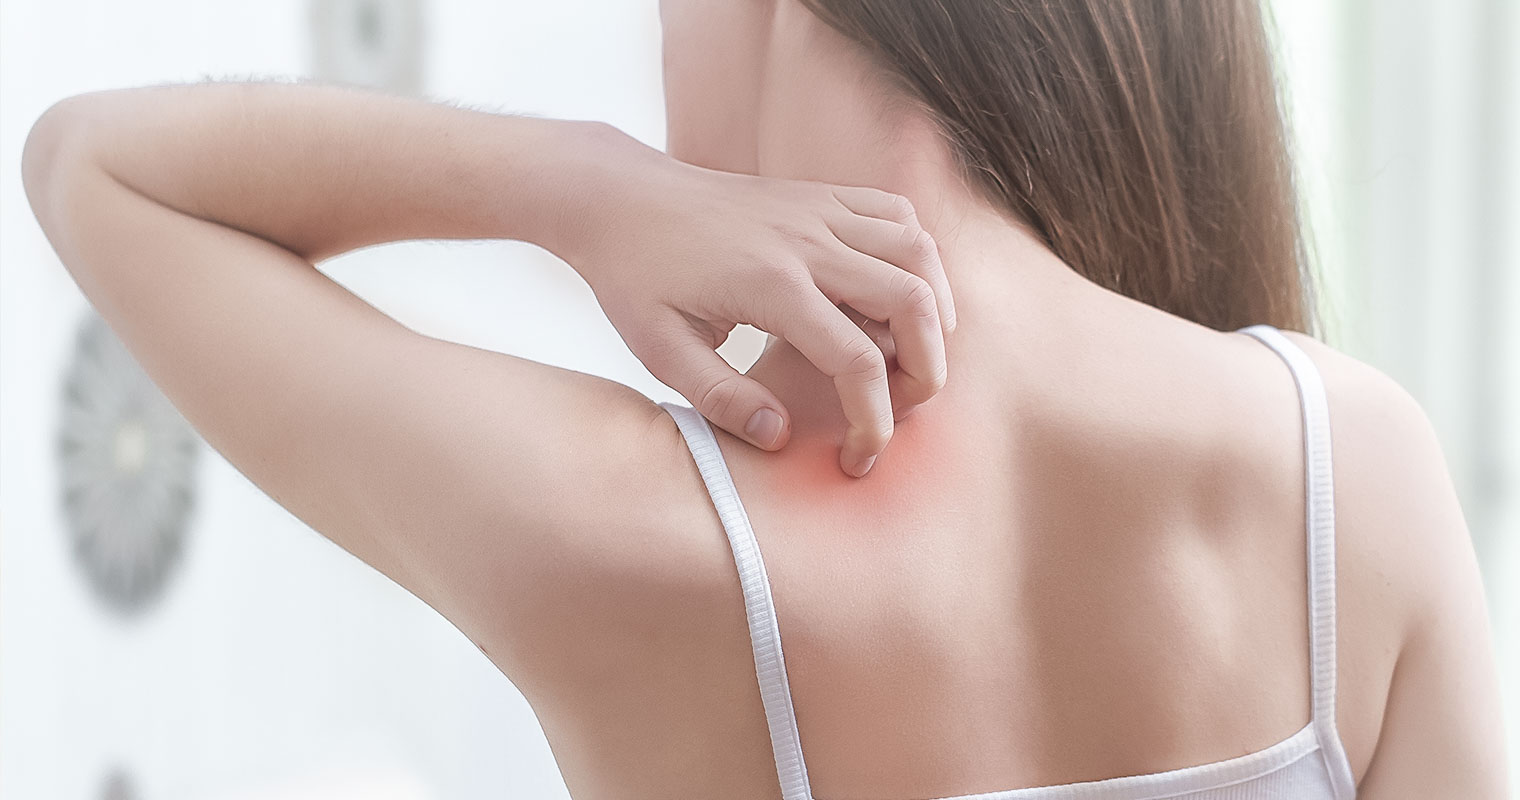 Woman scratching the back of her shoulder with heat rash